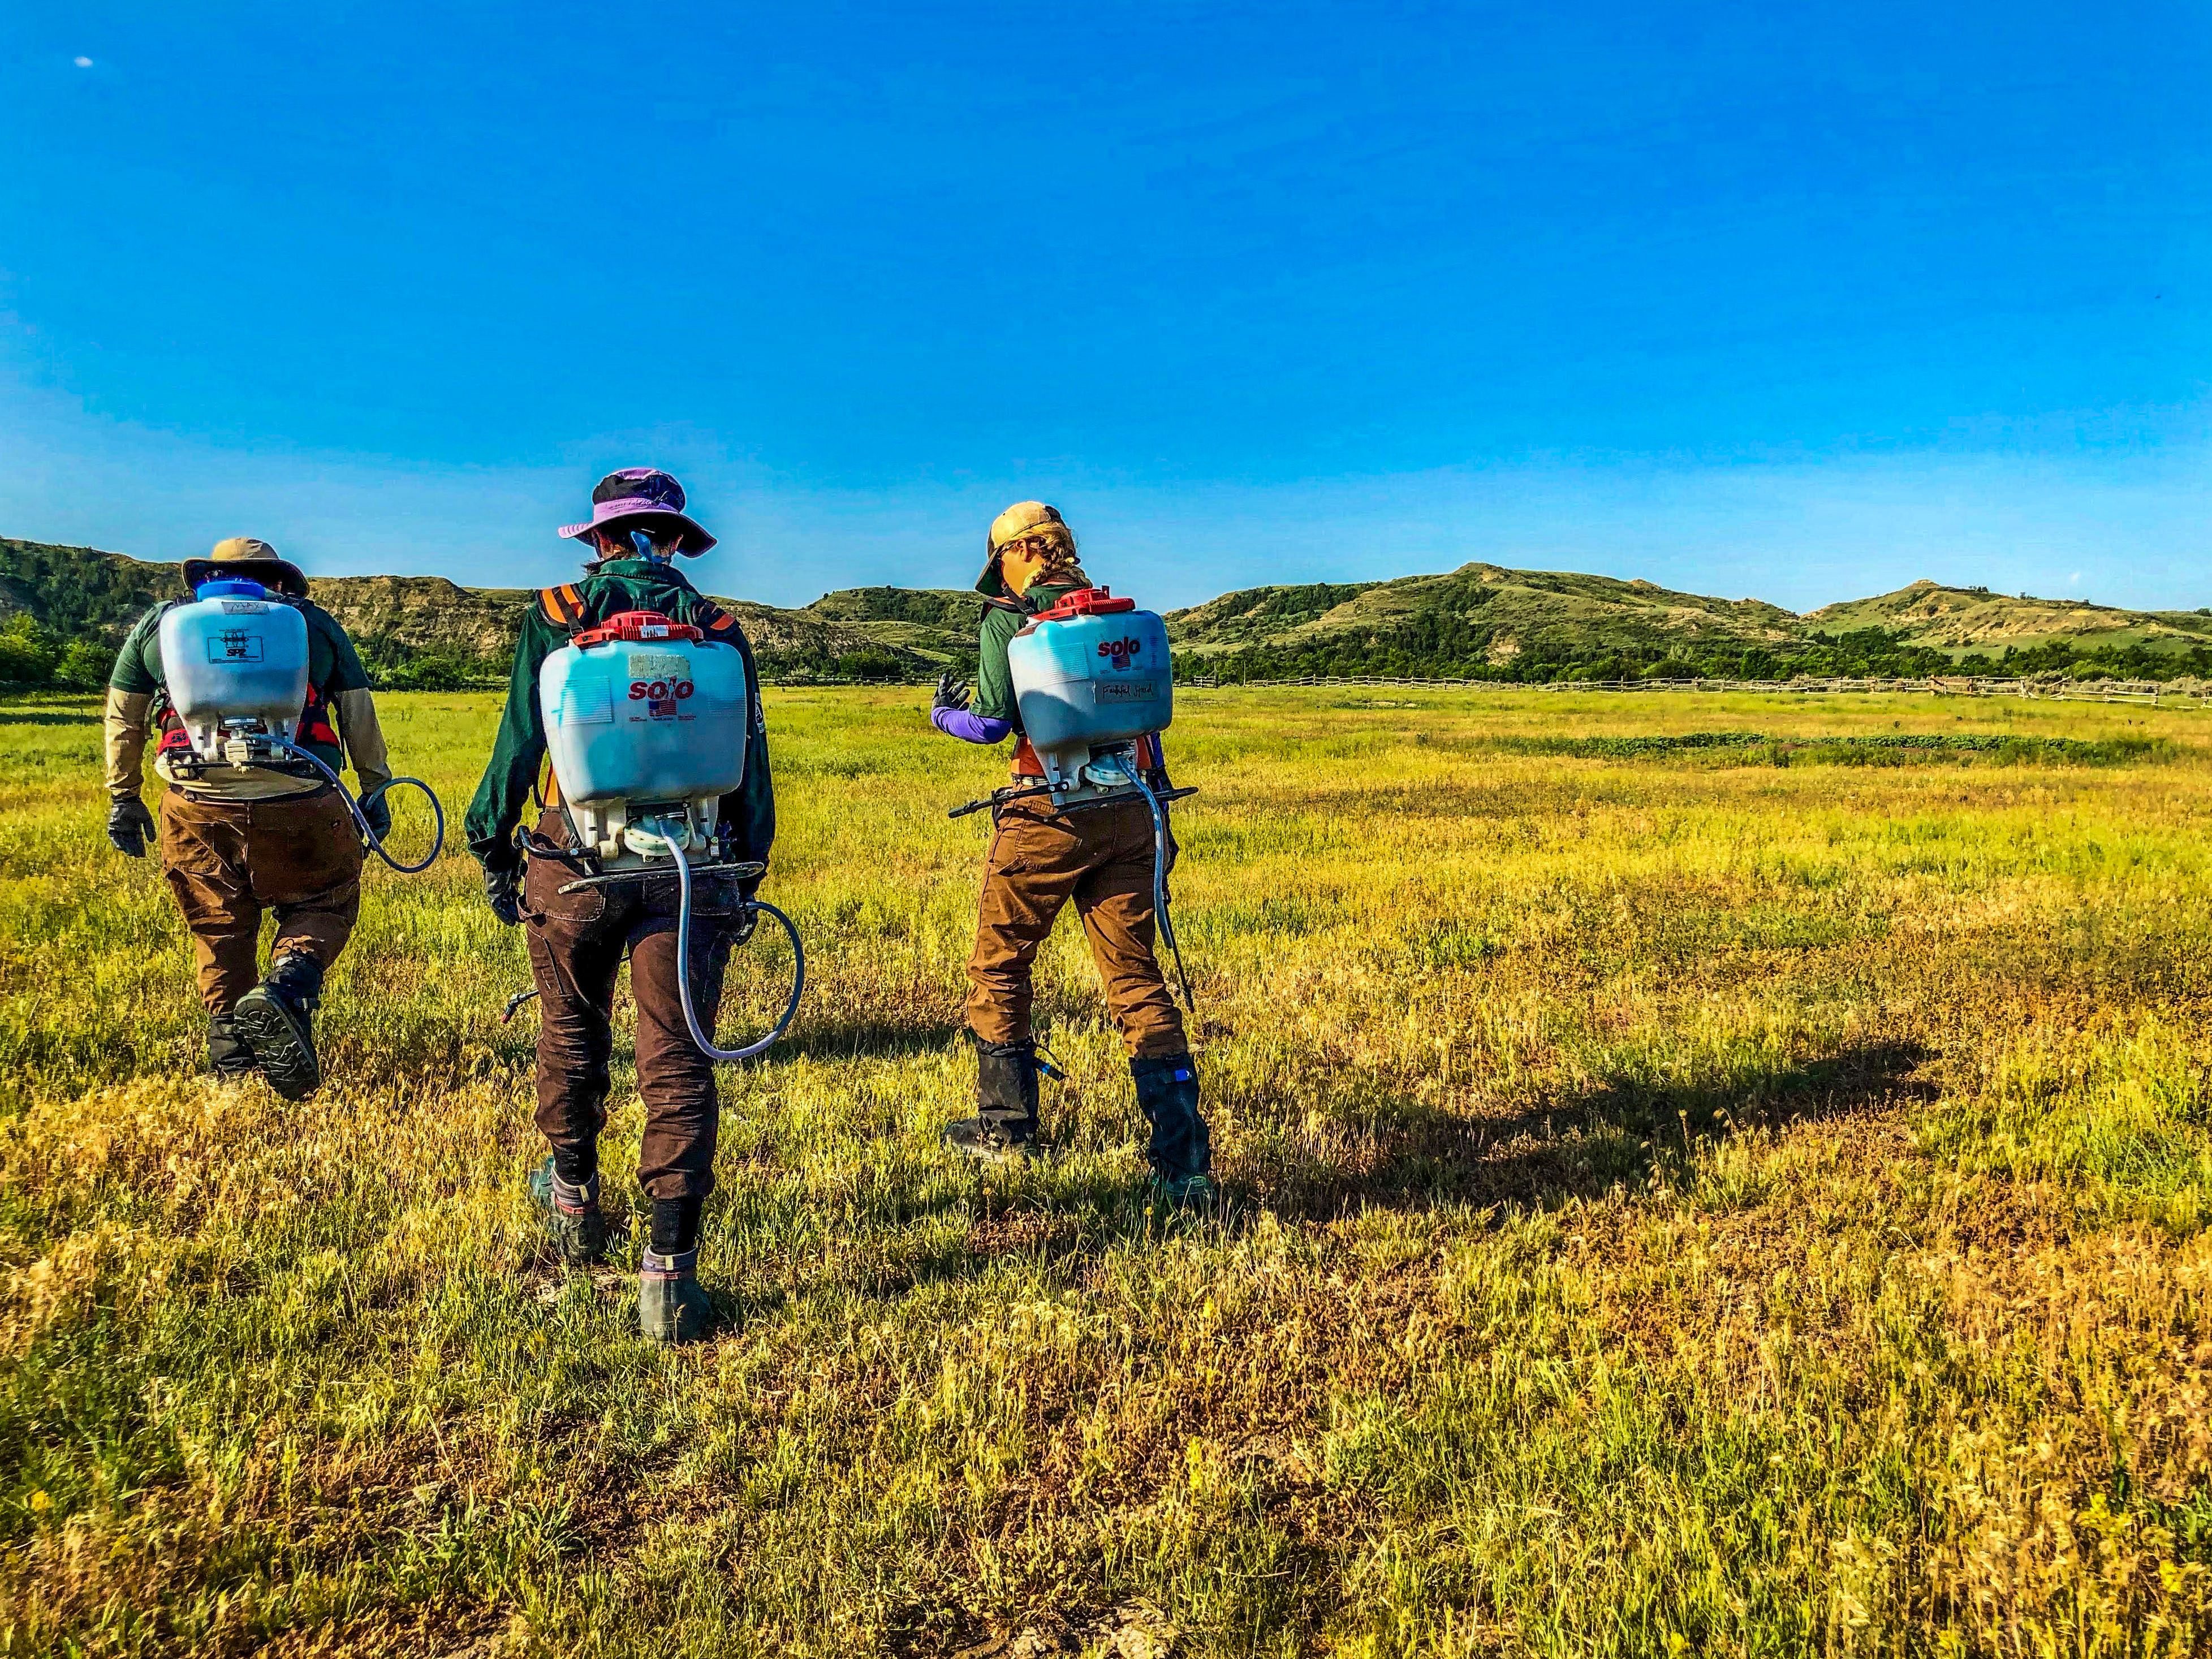 Three crew members walking in a field with weed sprayers on their backs indicating they are a Wildland Restoration Team Crew